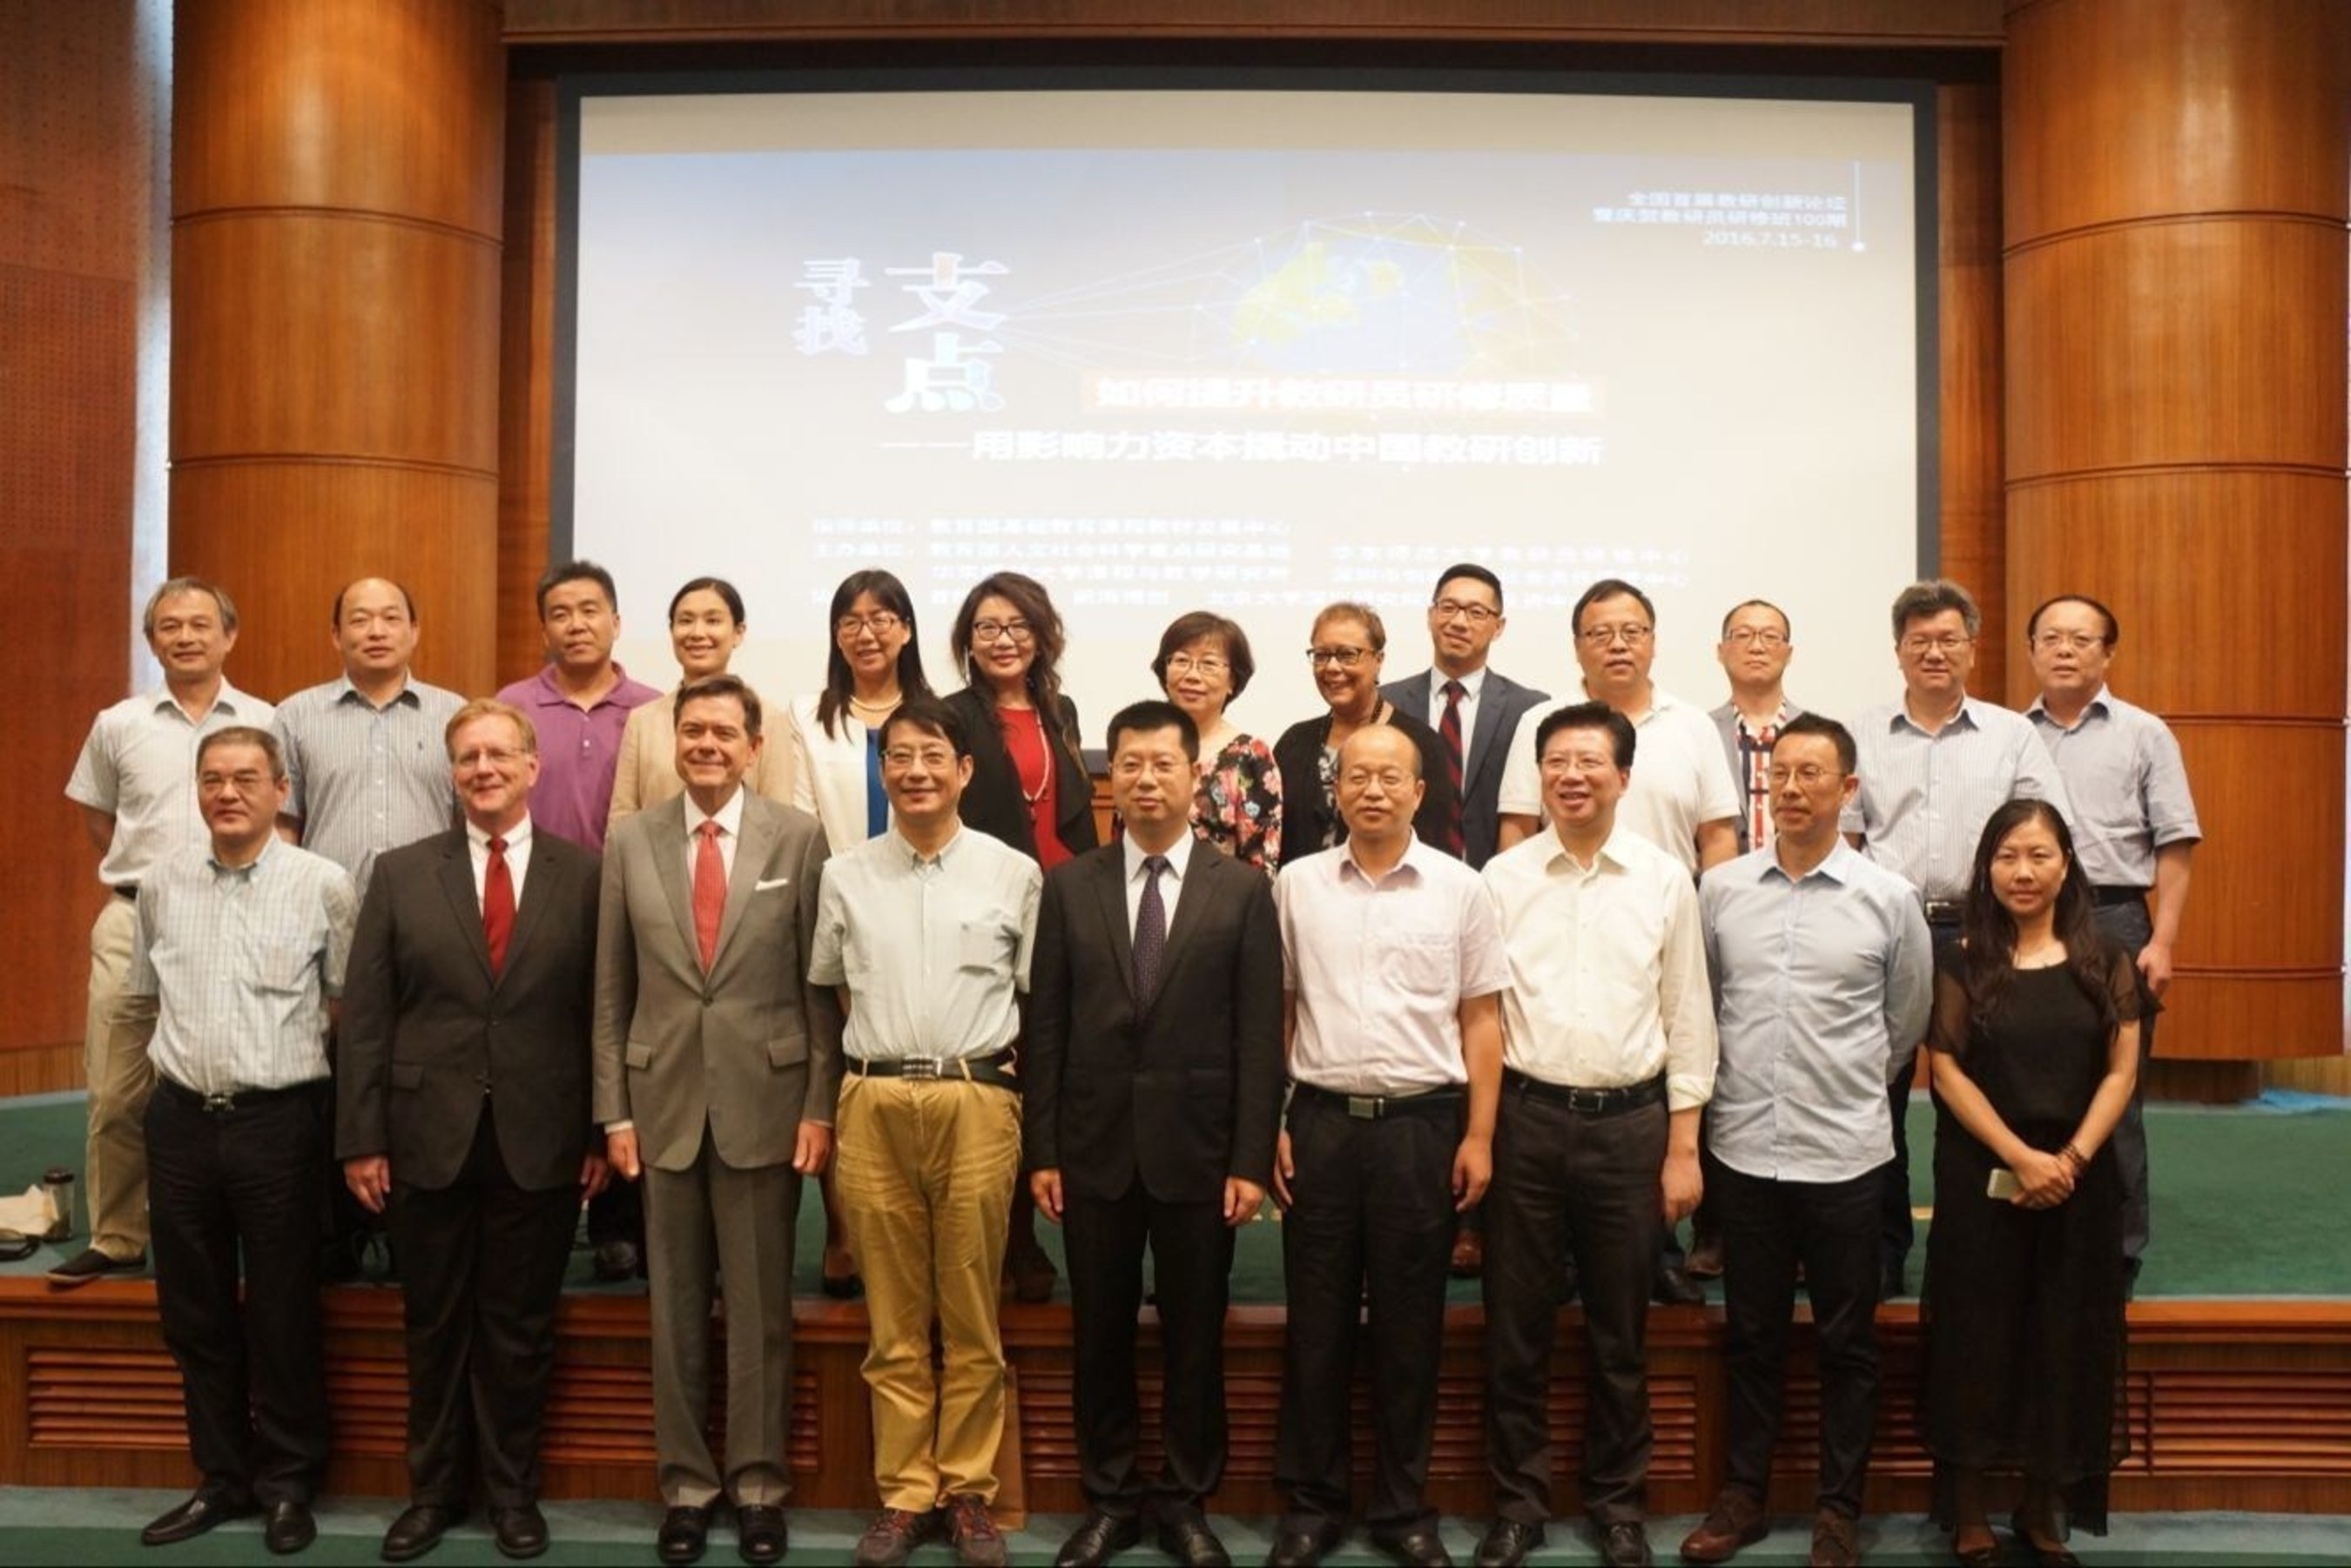 Photo taken at the China Teacher Leaders Forum 2016 on July 16th, 2016